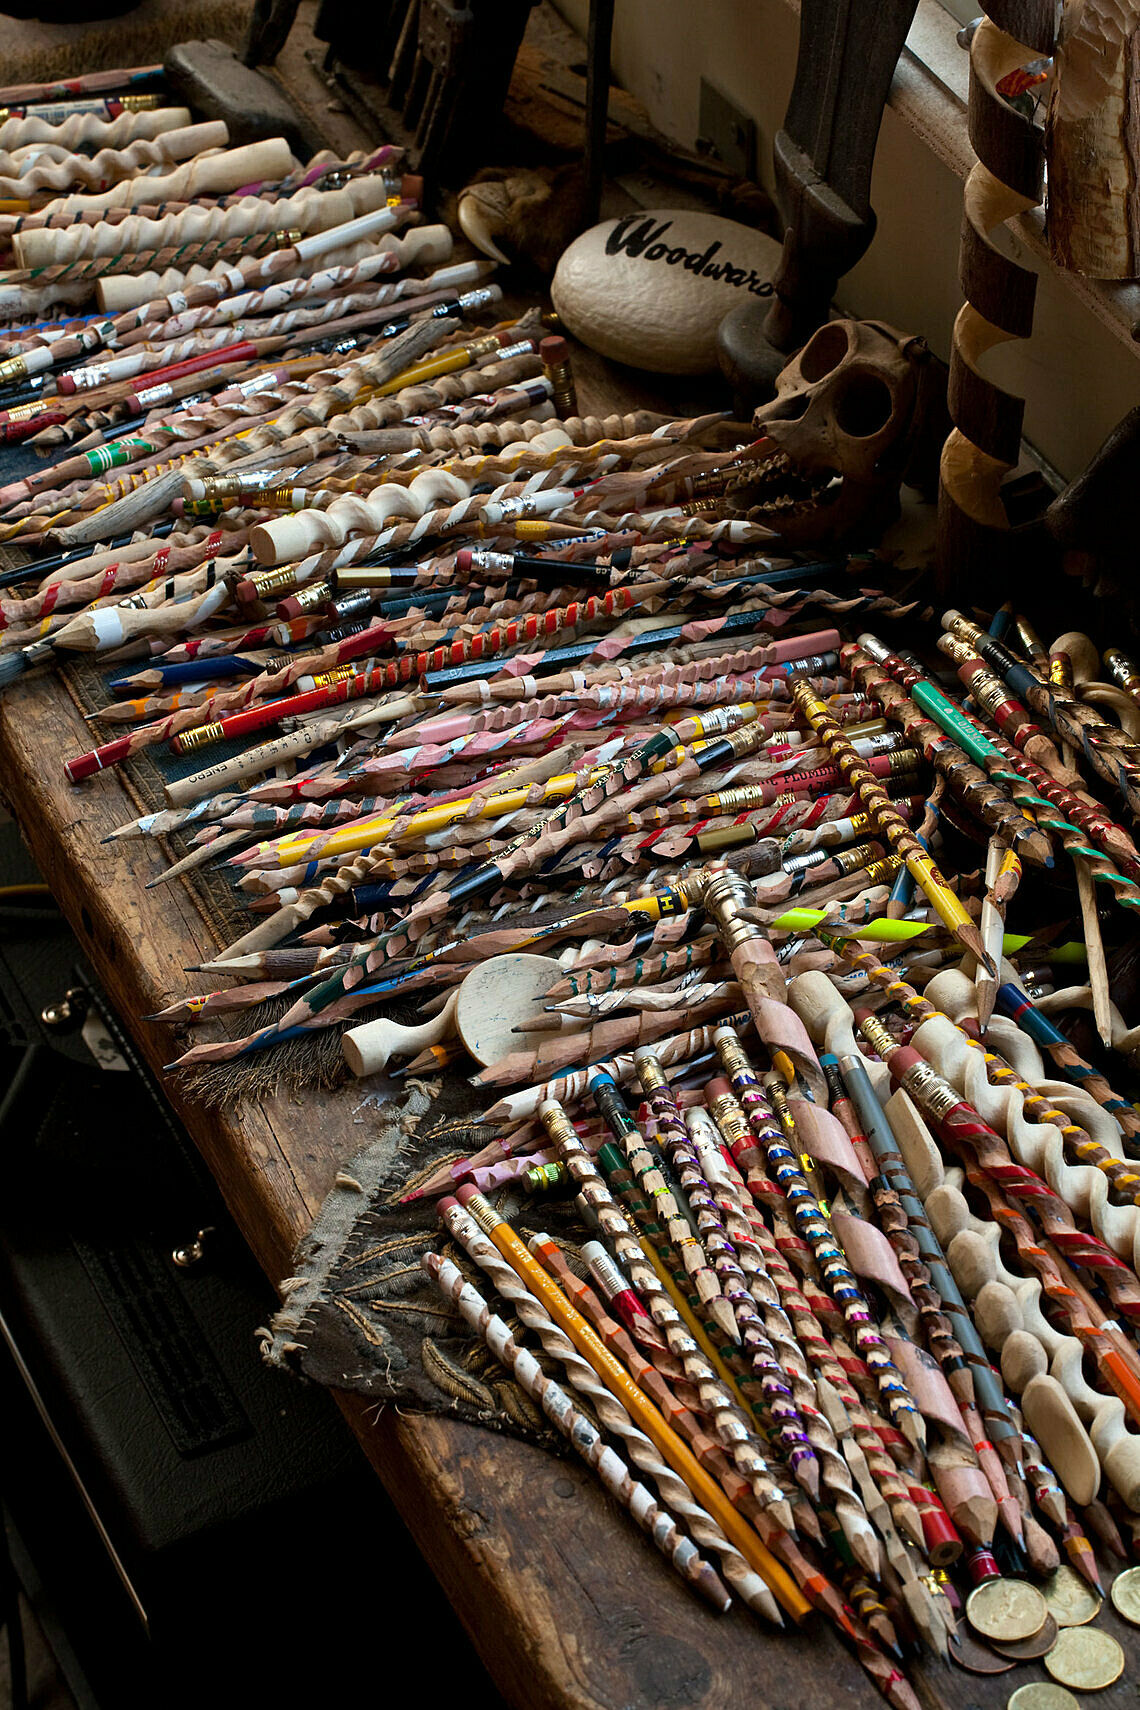 Many carved and colored pencils and sticks.